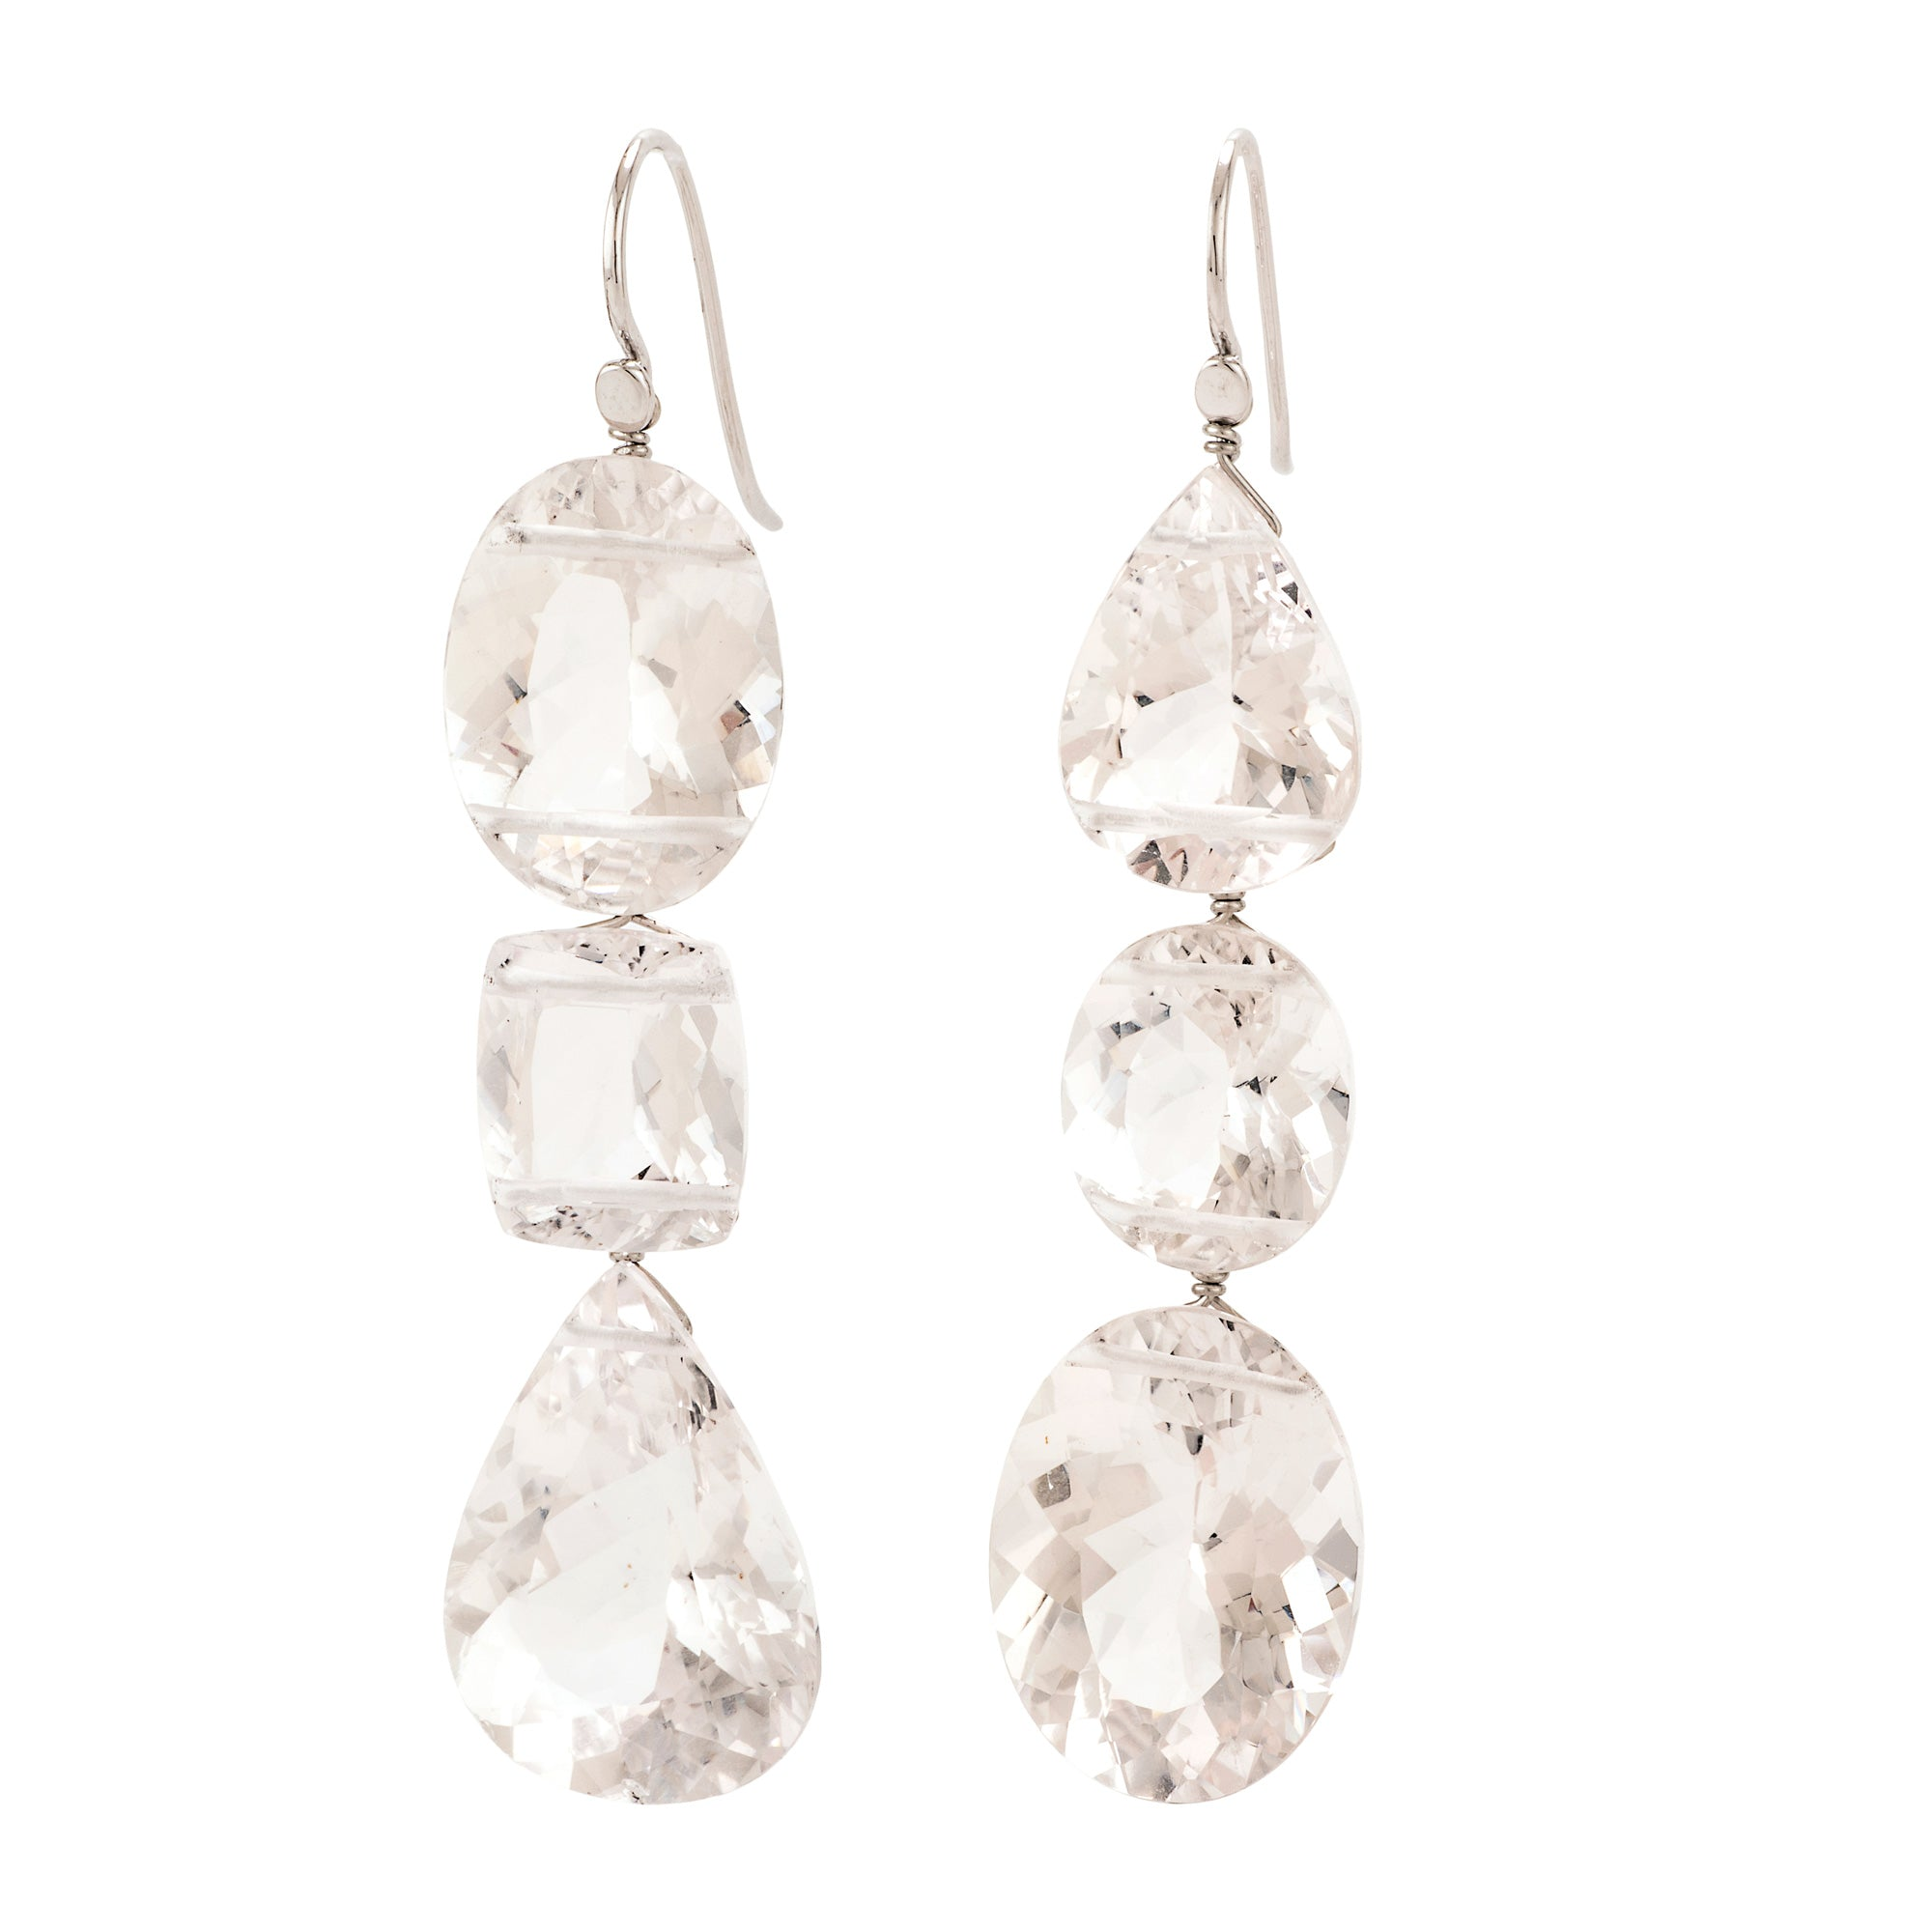 Shimmer III morganite earrings